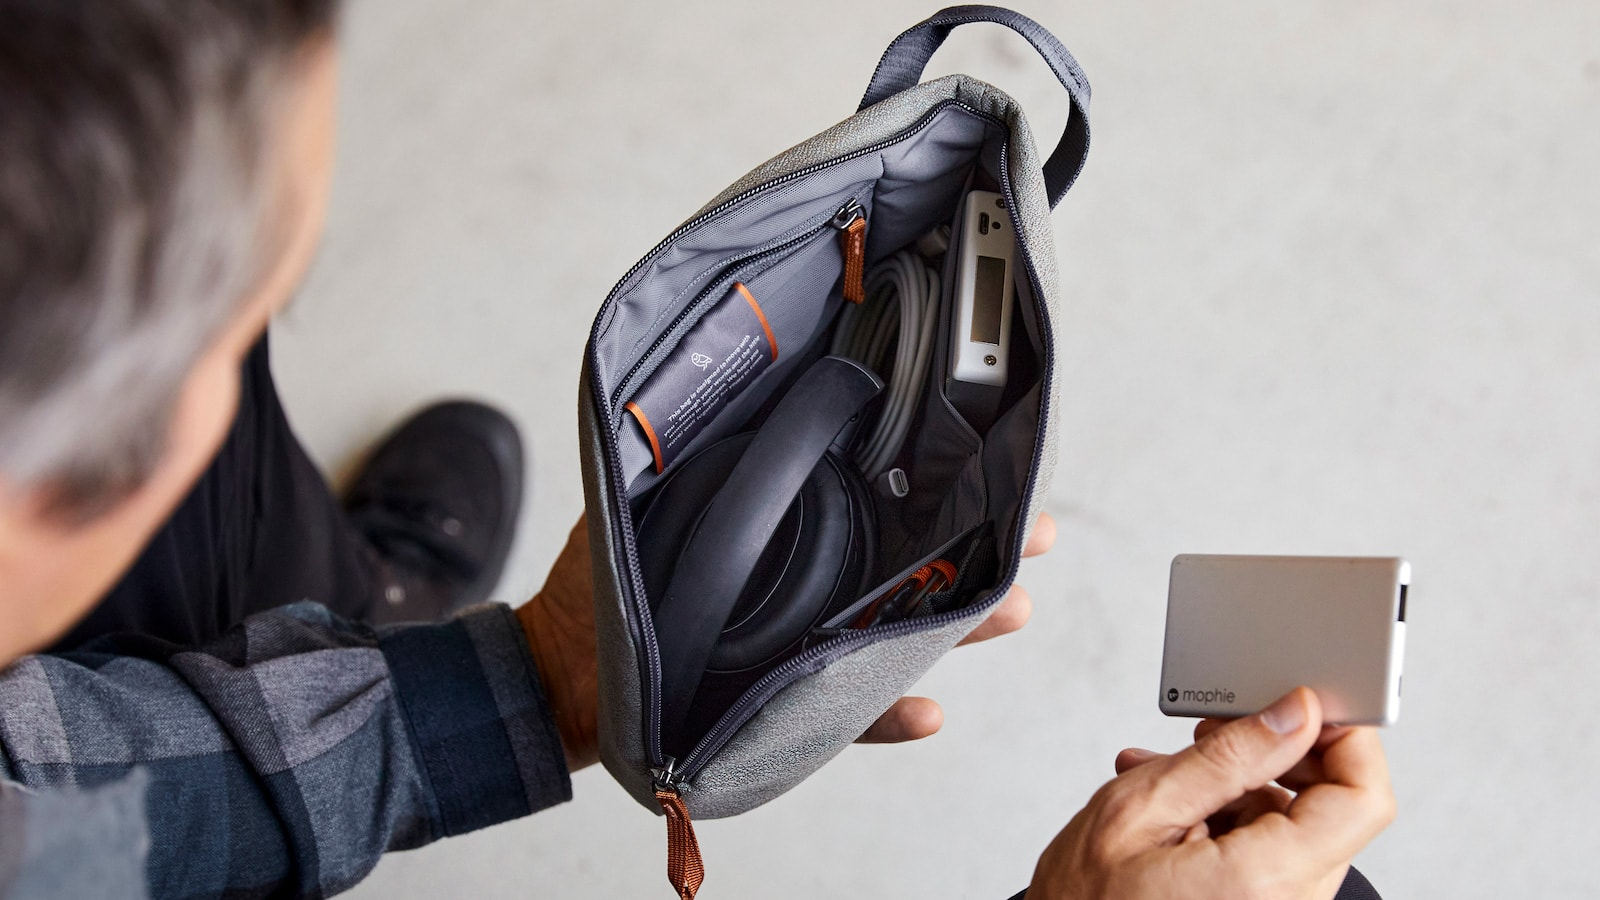 Bellroy Desk Pouch functional bag has a splayed opening so you easily see its contents